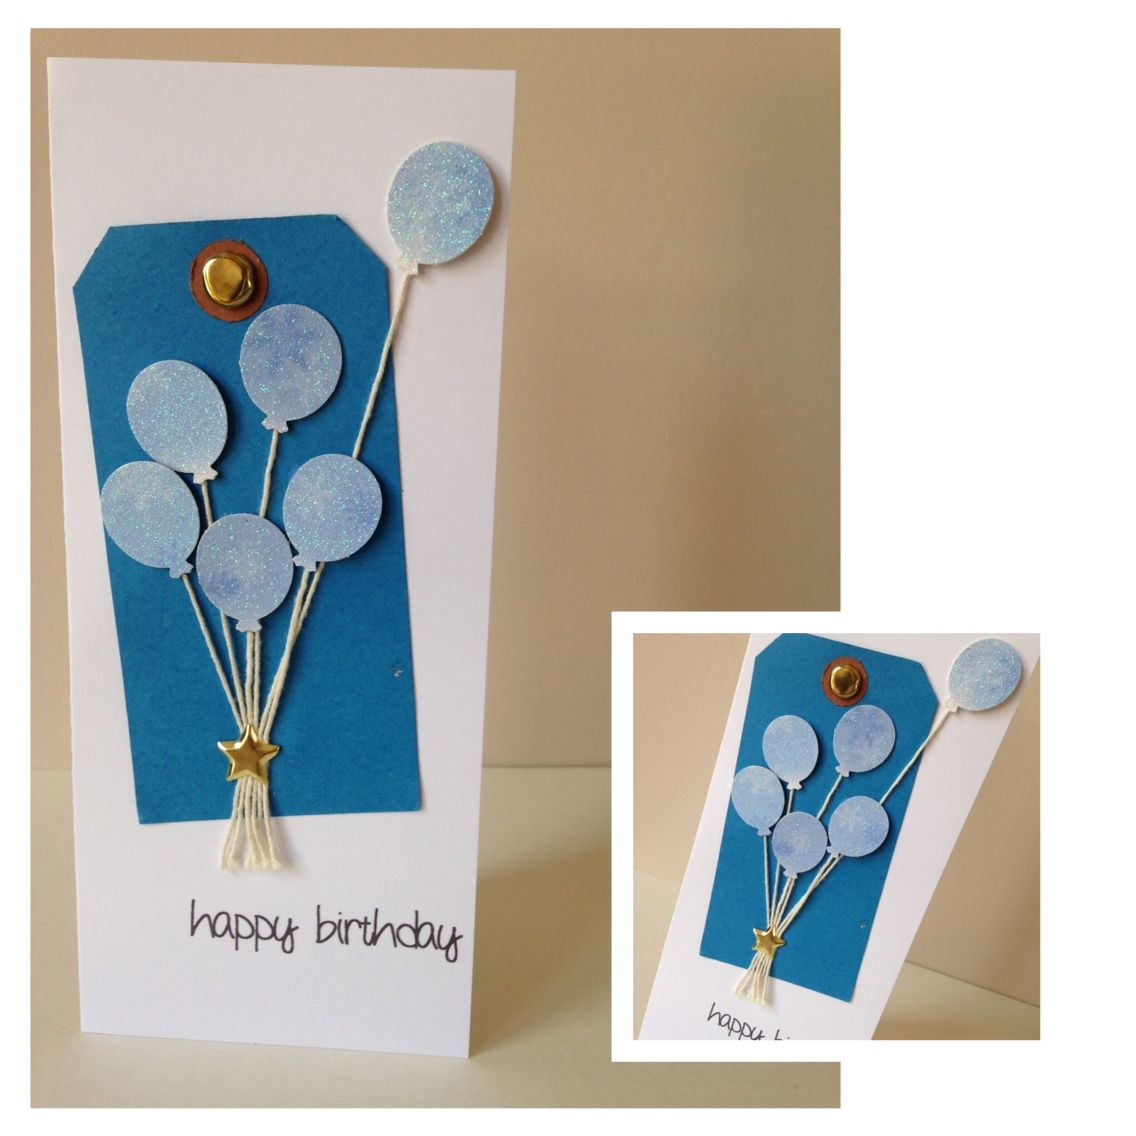 Balloon birthday jcreations handmade birthday cards pinterest